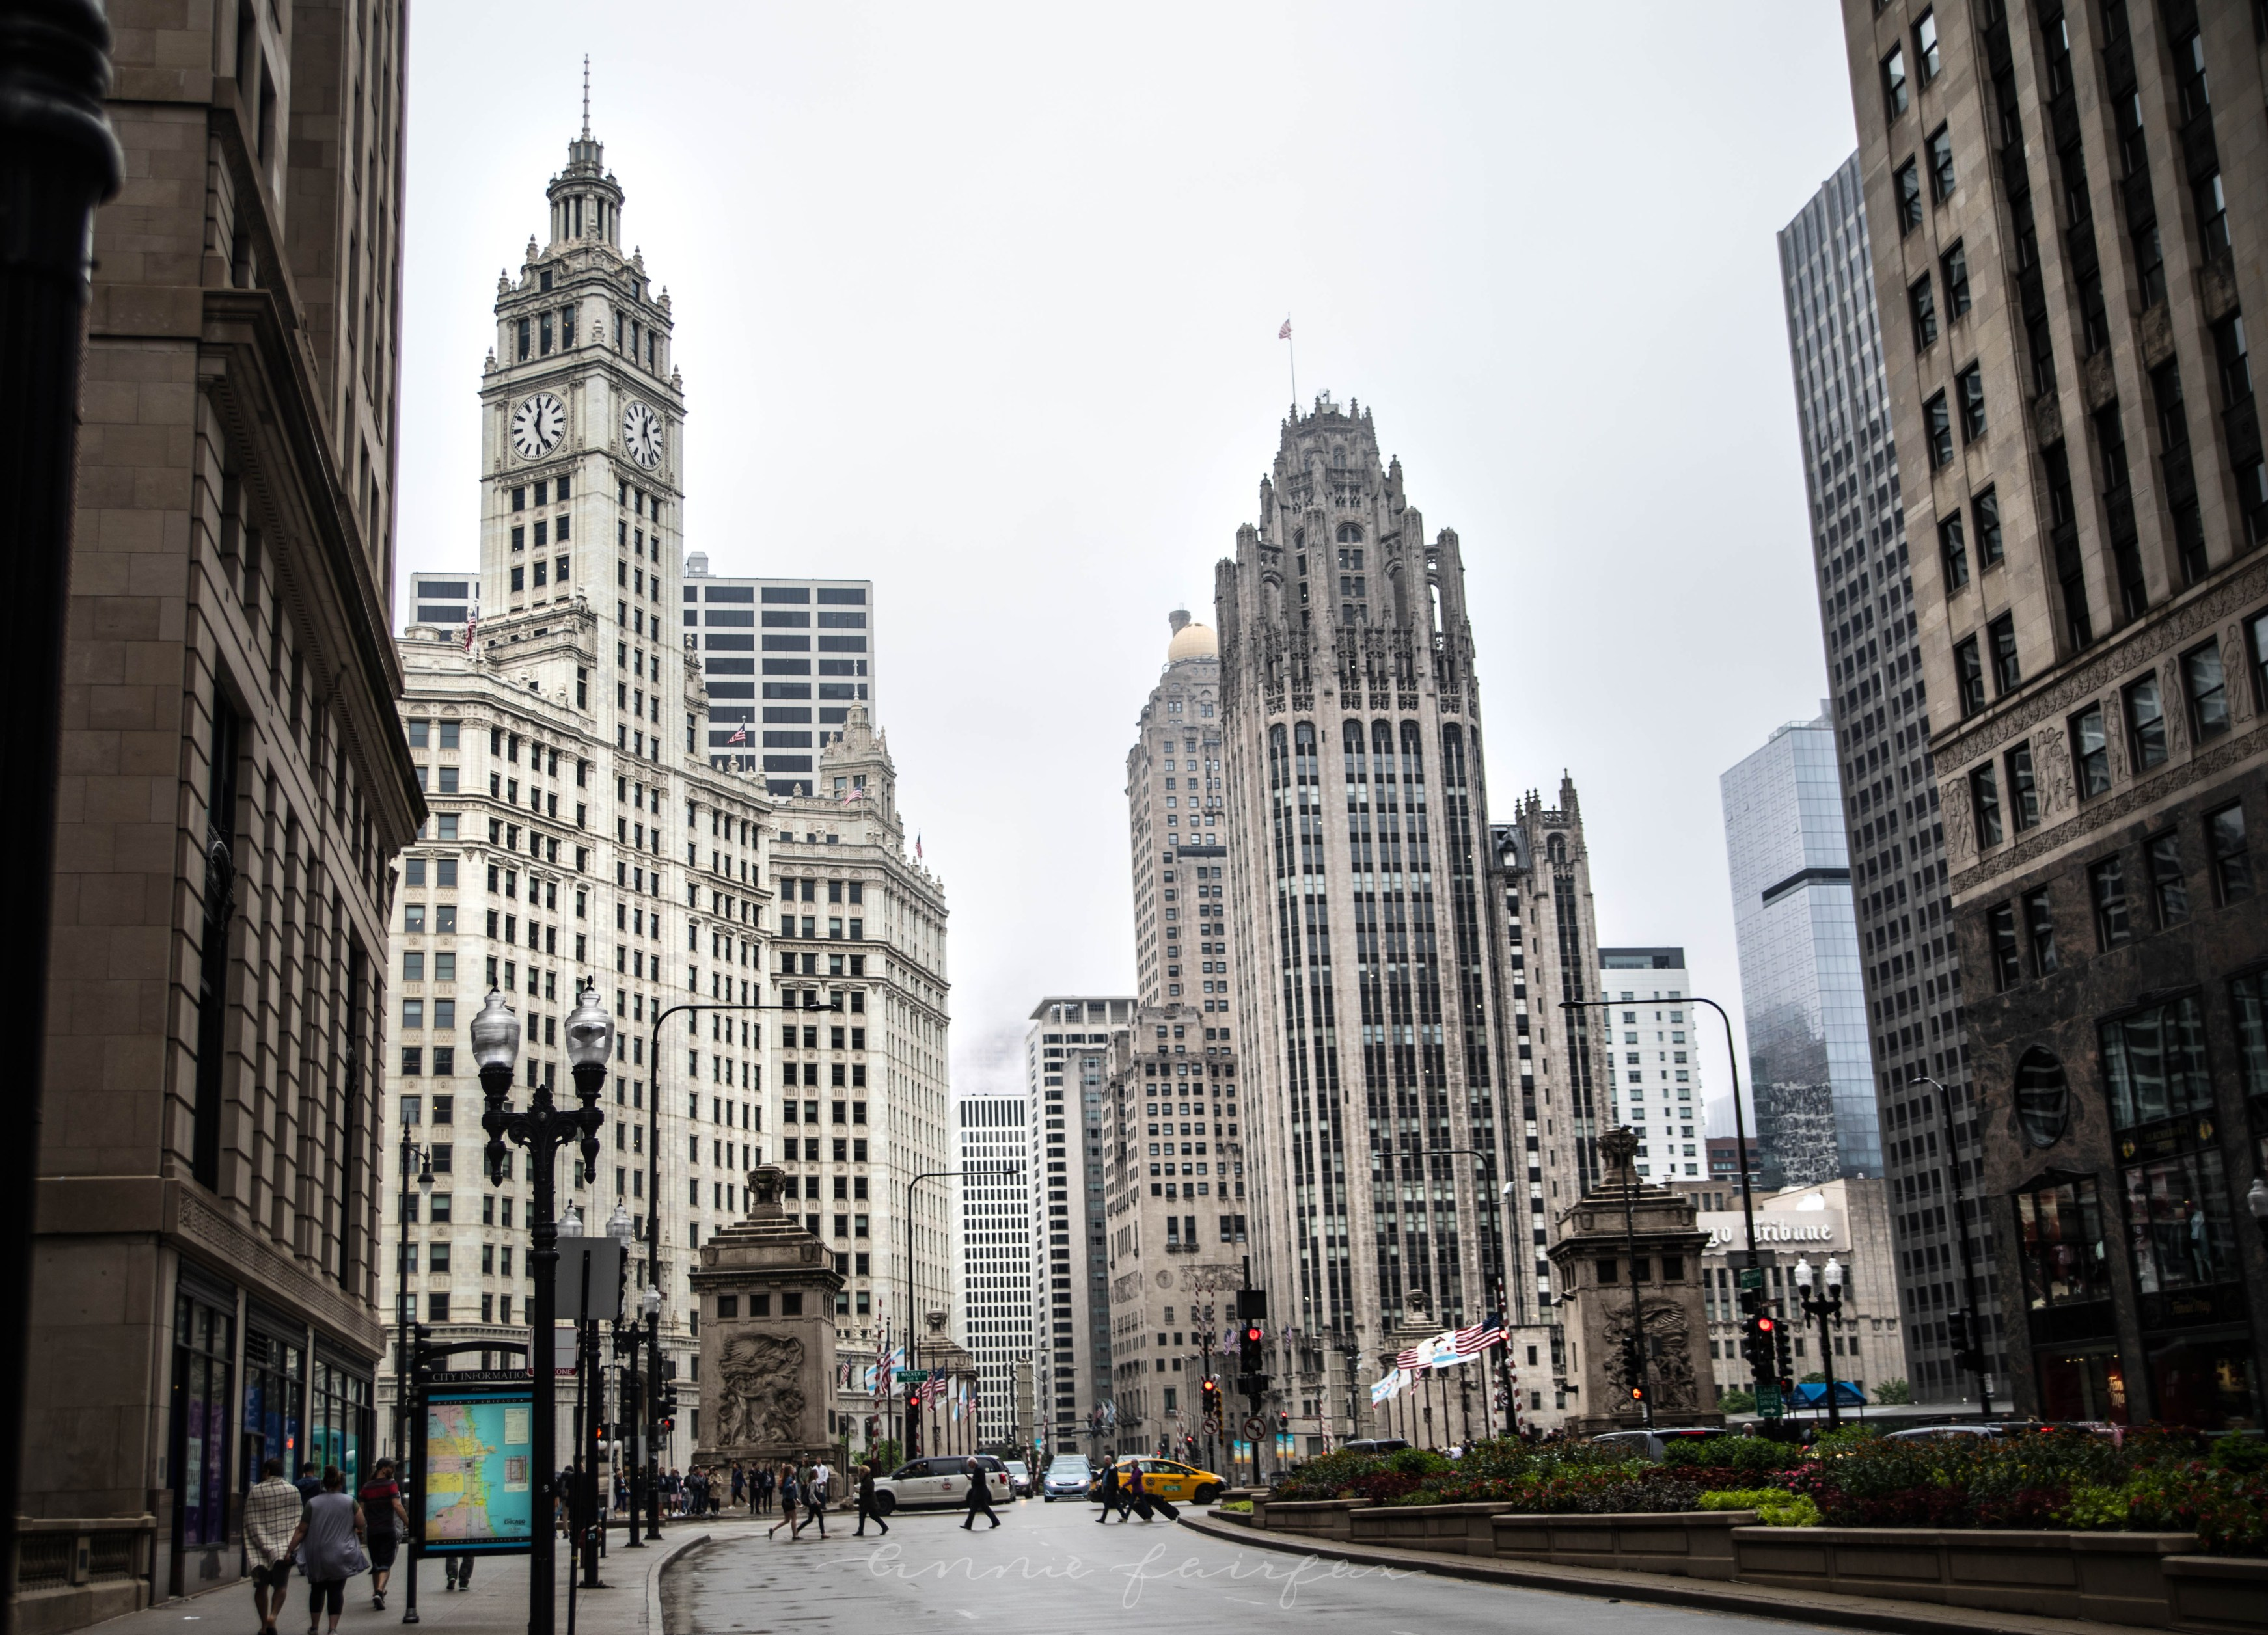 The Complete Traveler's Guide to Chicago What to Eat, See, and Do